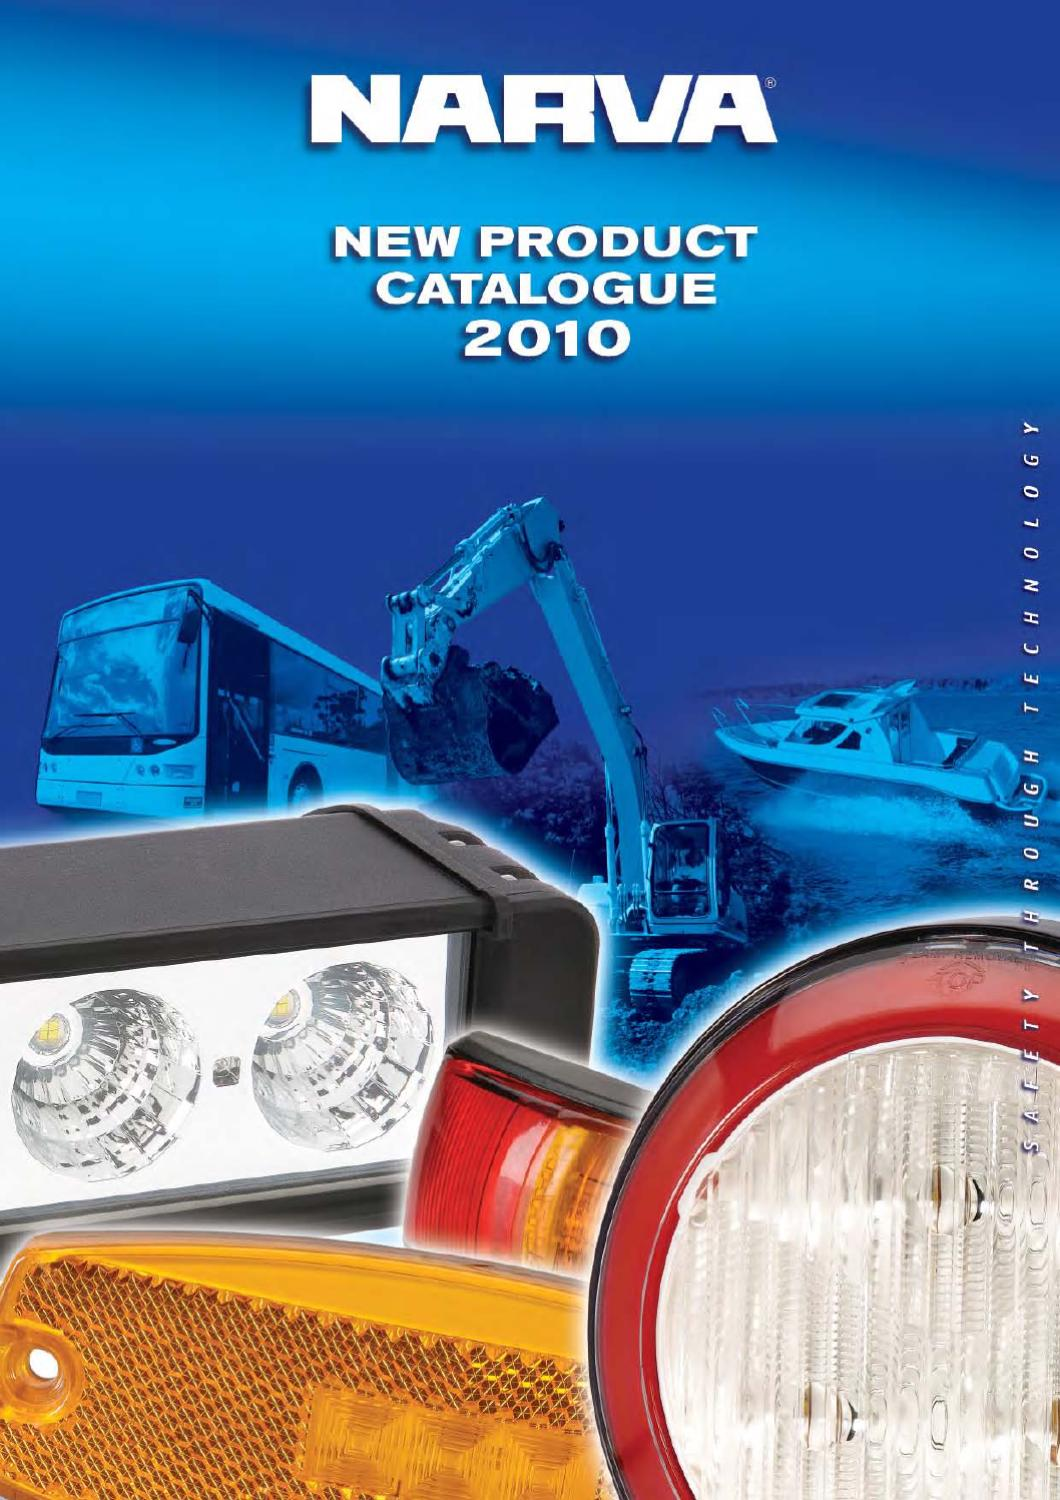 hight resolution of narva new product catalogue 2010 eng by autosvet com ua issuu